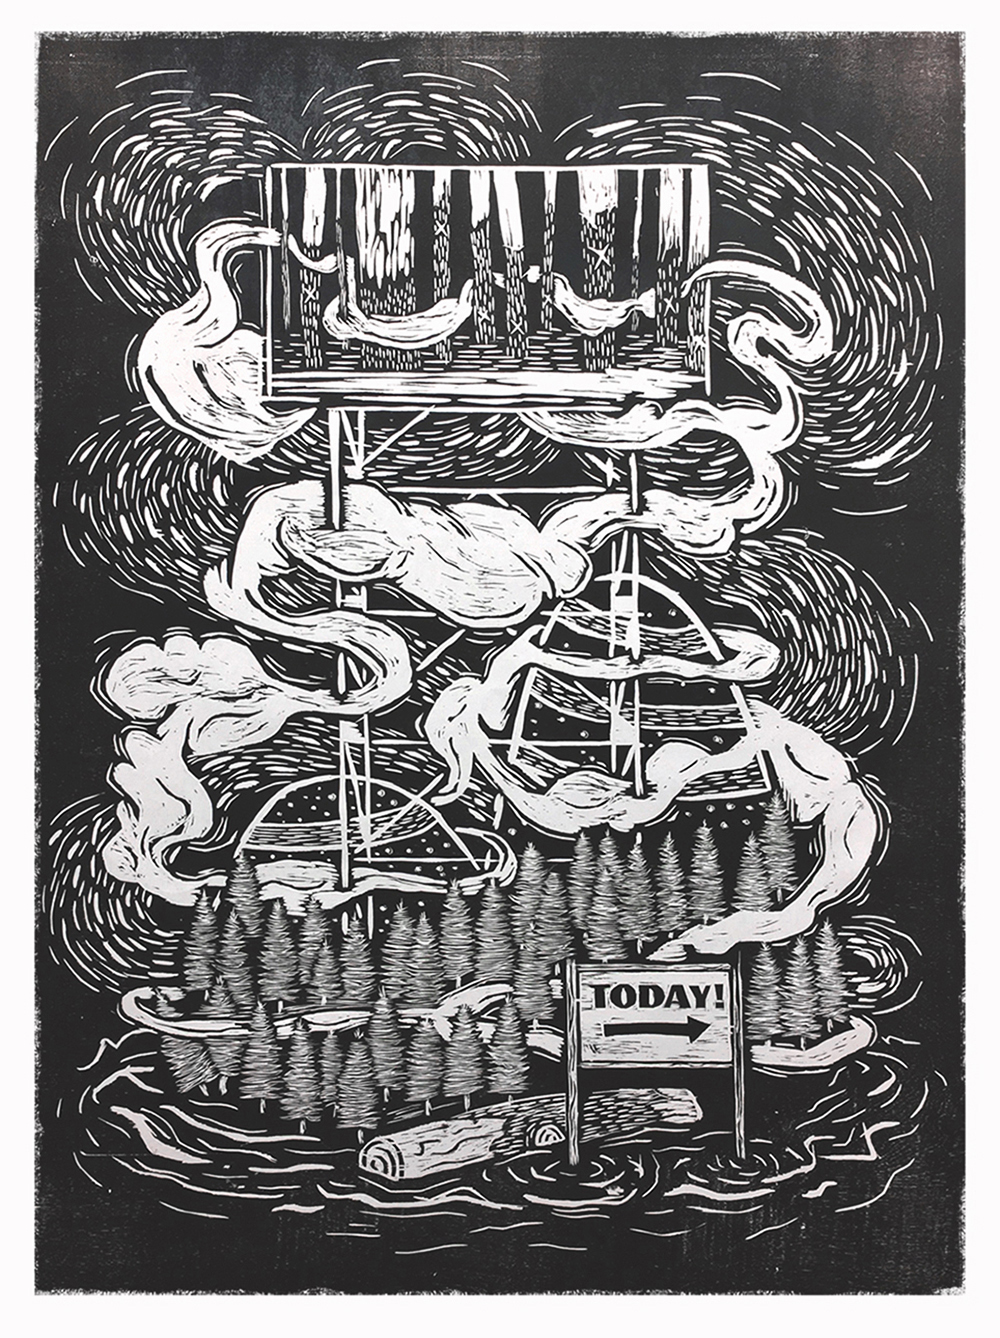 I love all of the works Landon is showing at Superfine! but this one strikes a cord. It's intricate, story-drive,and who can resist a woodcut?